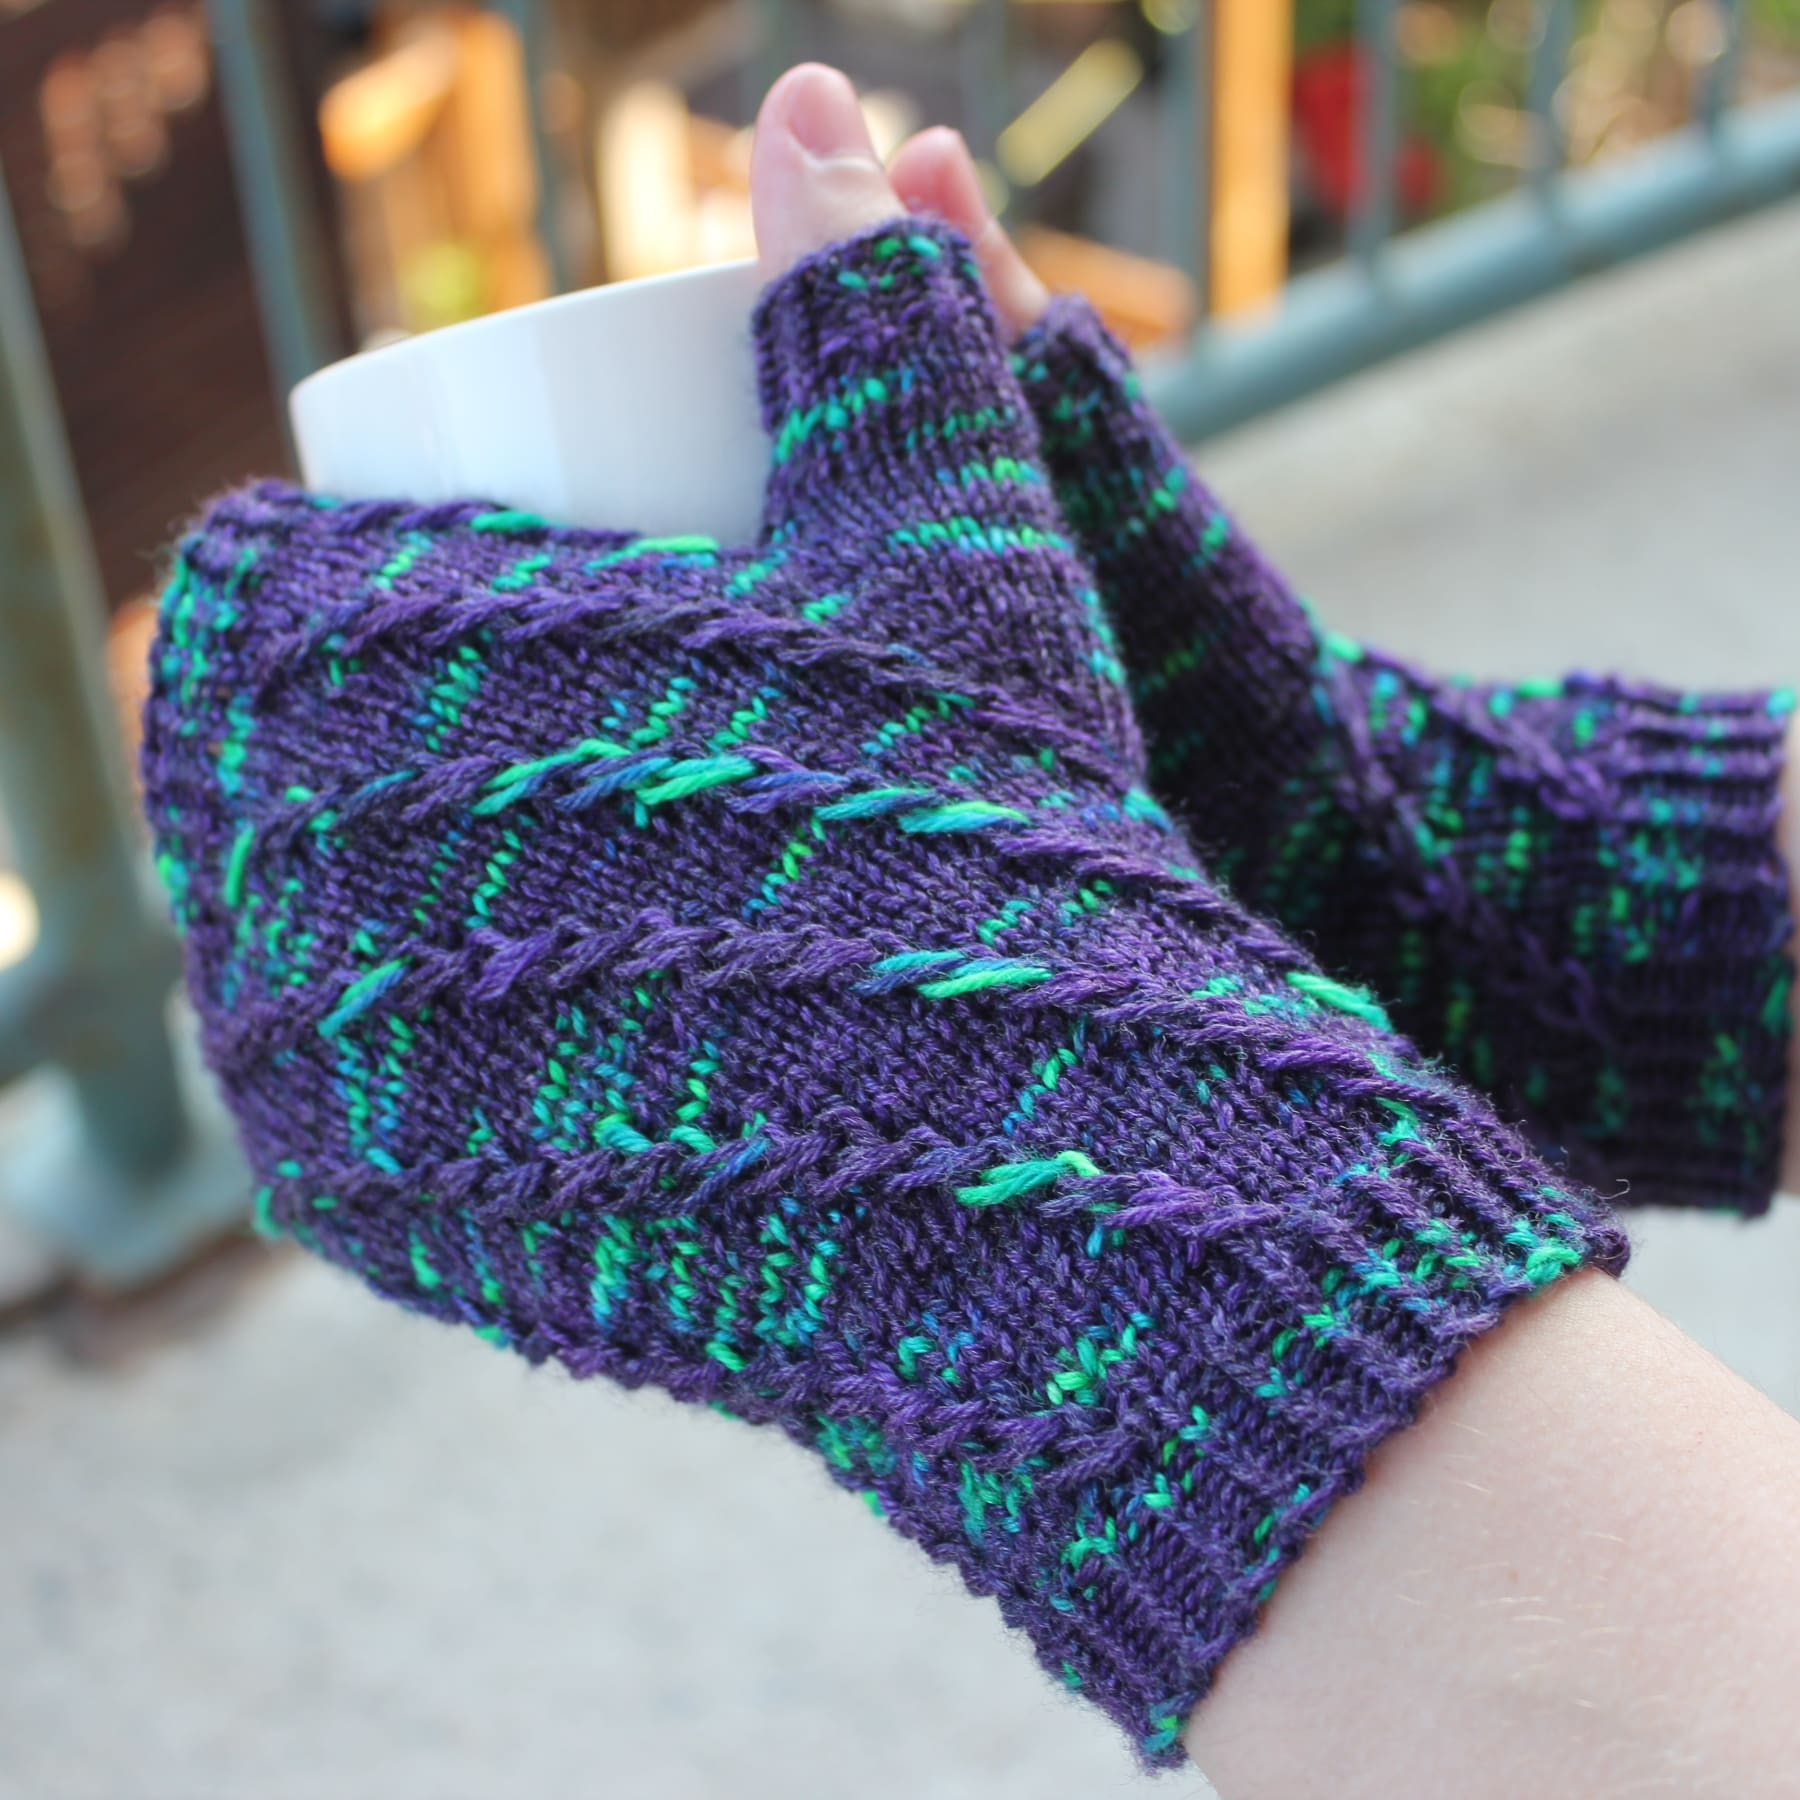 Side view of hands holding a white mug and wearing dark purple fingerless mitts with bright green flecks in a twisting spiralling pattern.